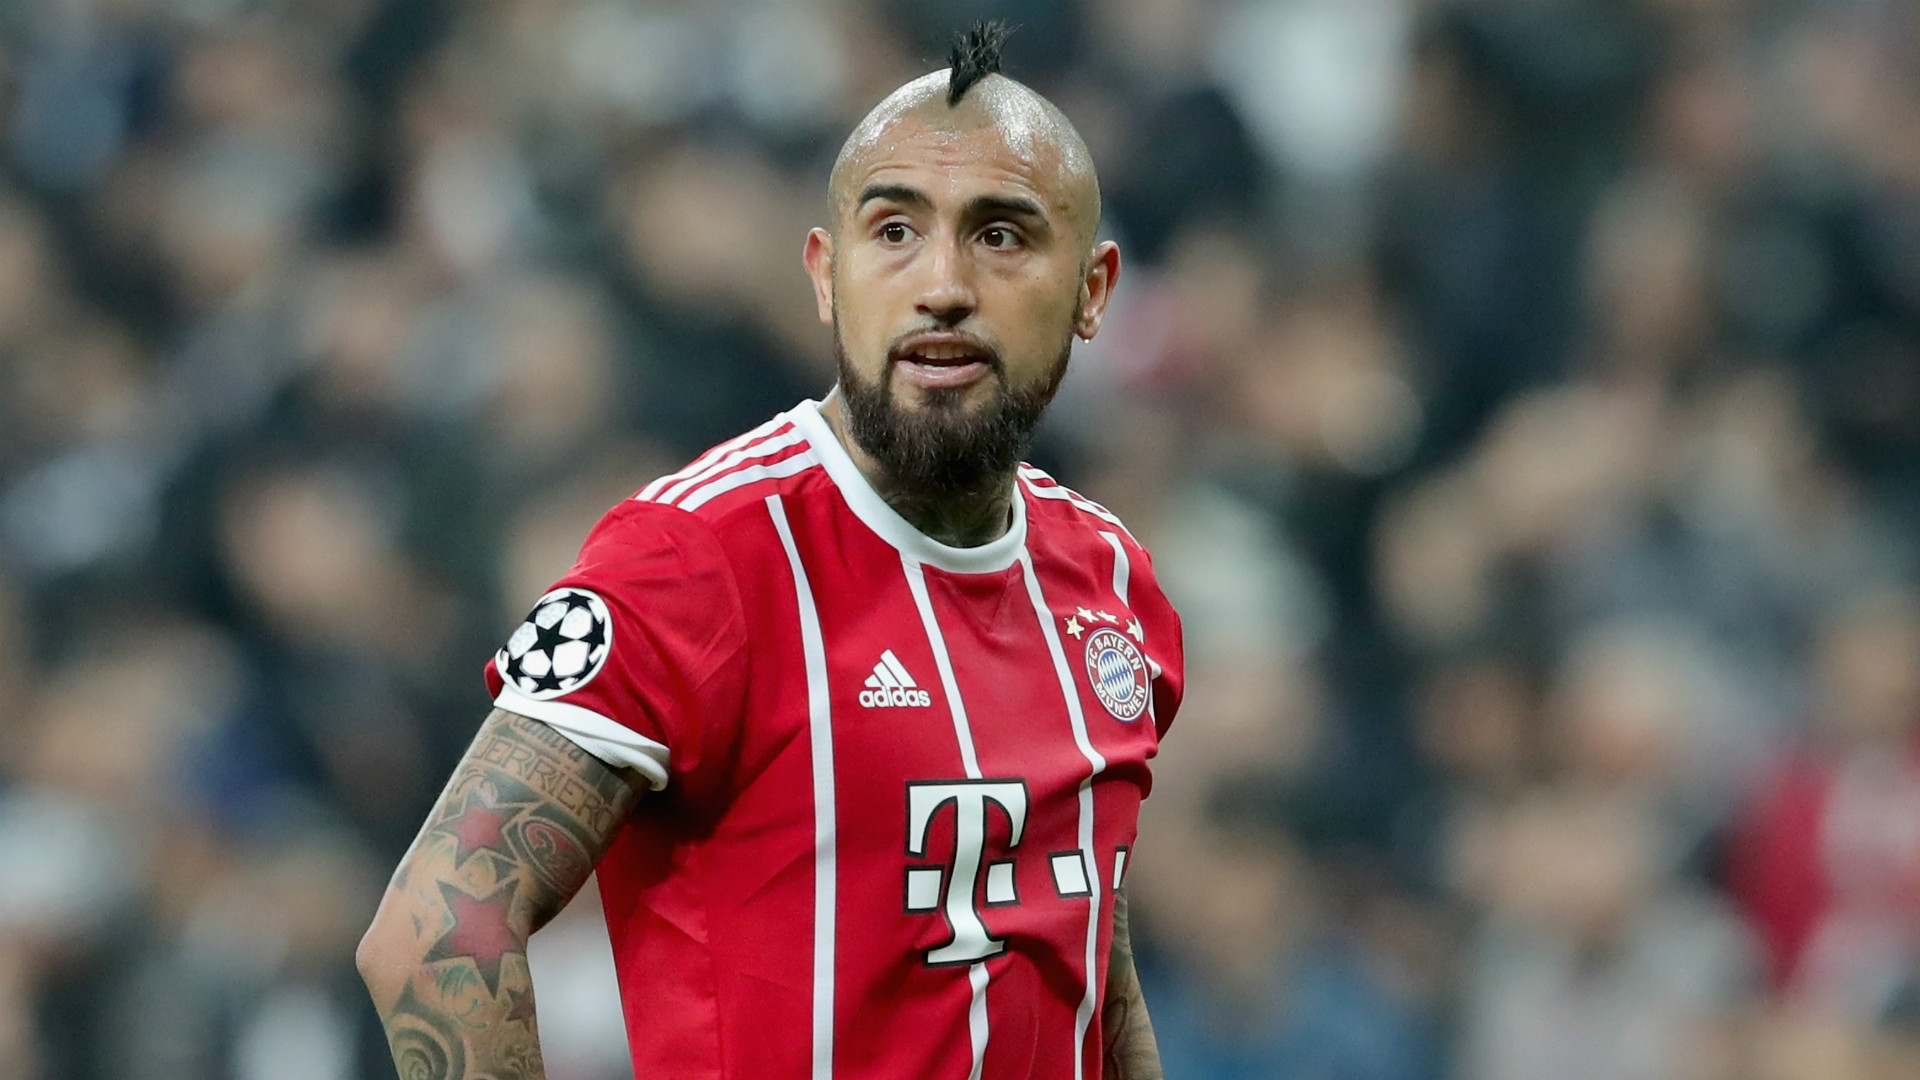 Arturo Vidal - Barcelona's new transfer